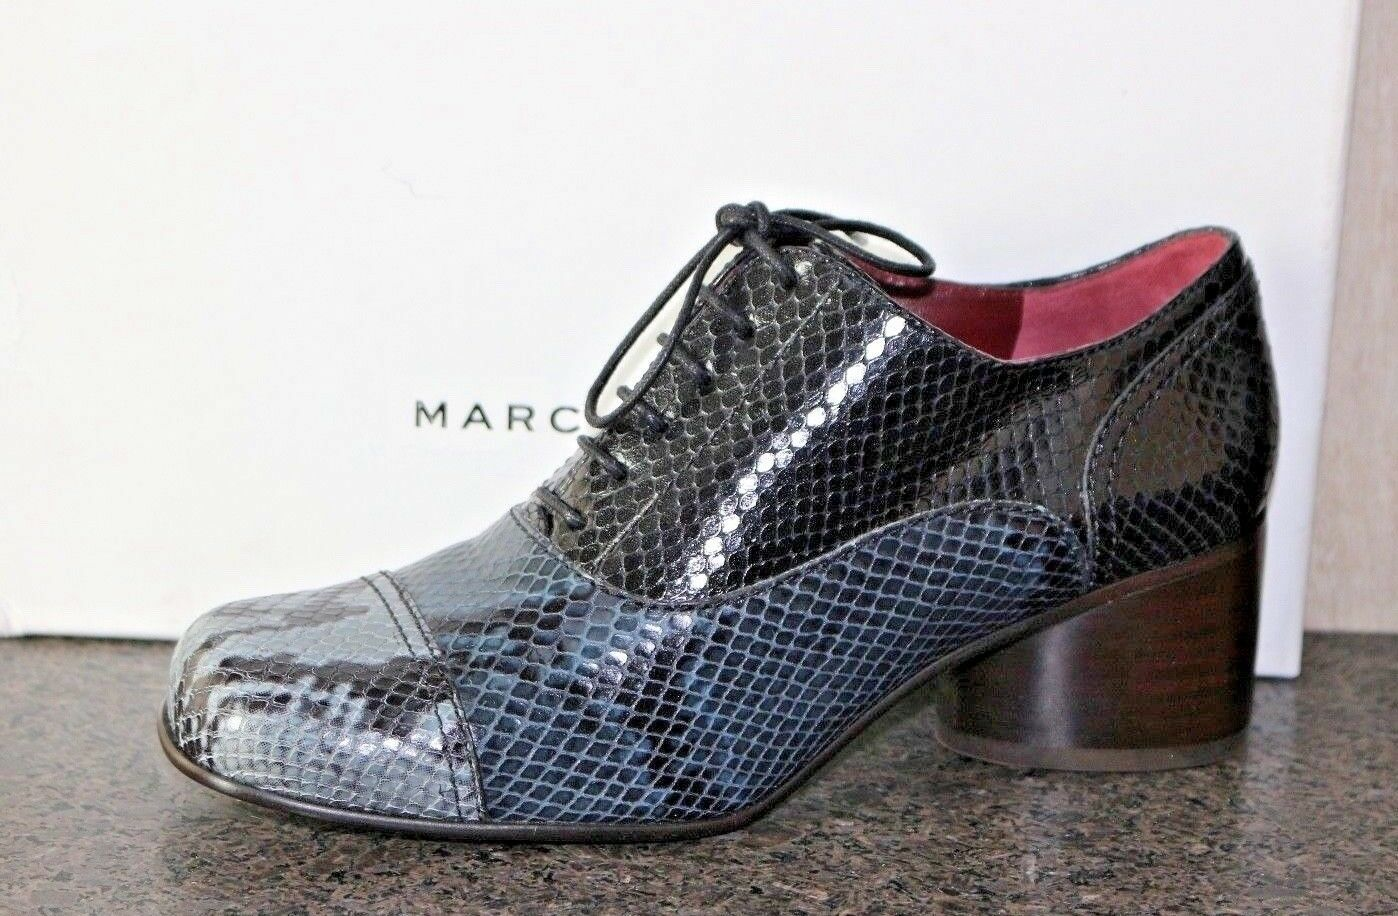 NIB MARK JACOBS JACOBS JACOBS MULTI-COLOR LACE UP EMBOSSED SNAKESKIN OXFORDS shoes 37 0e1965